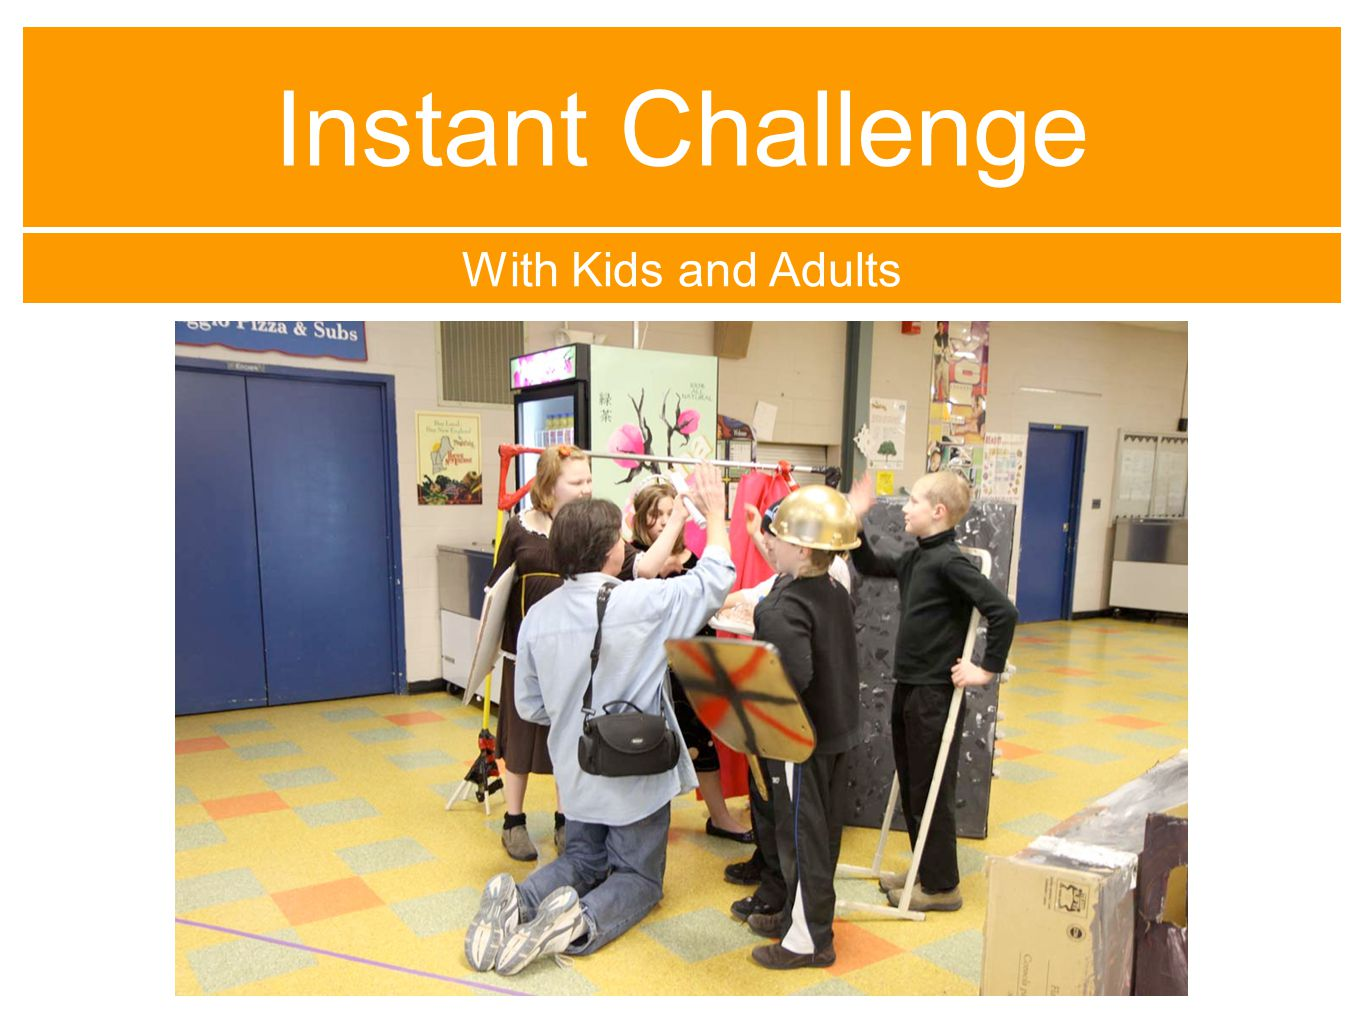 Instant Challenge With Kids and Adults